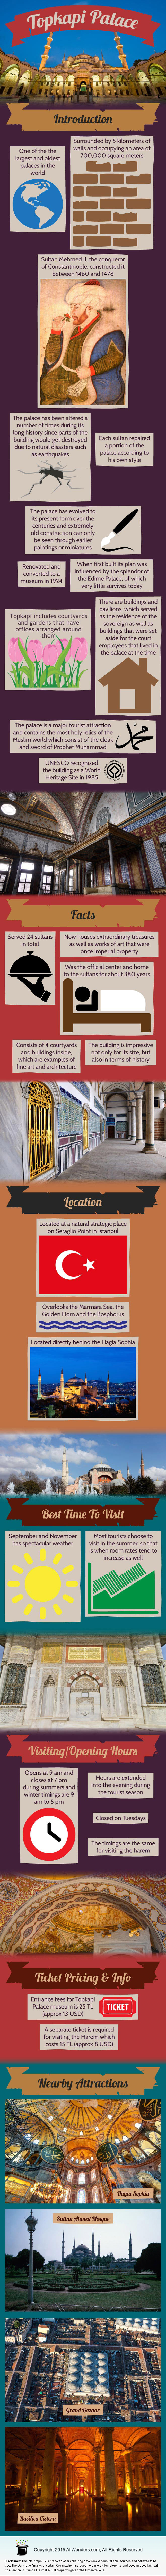 Topkapi Palace - Facts & Infographic